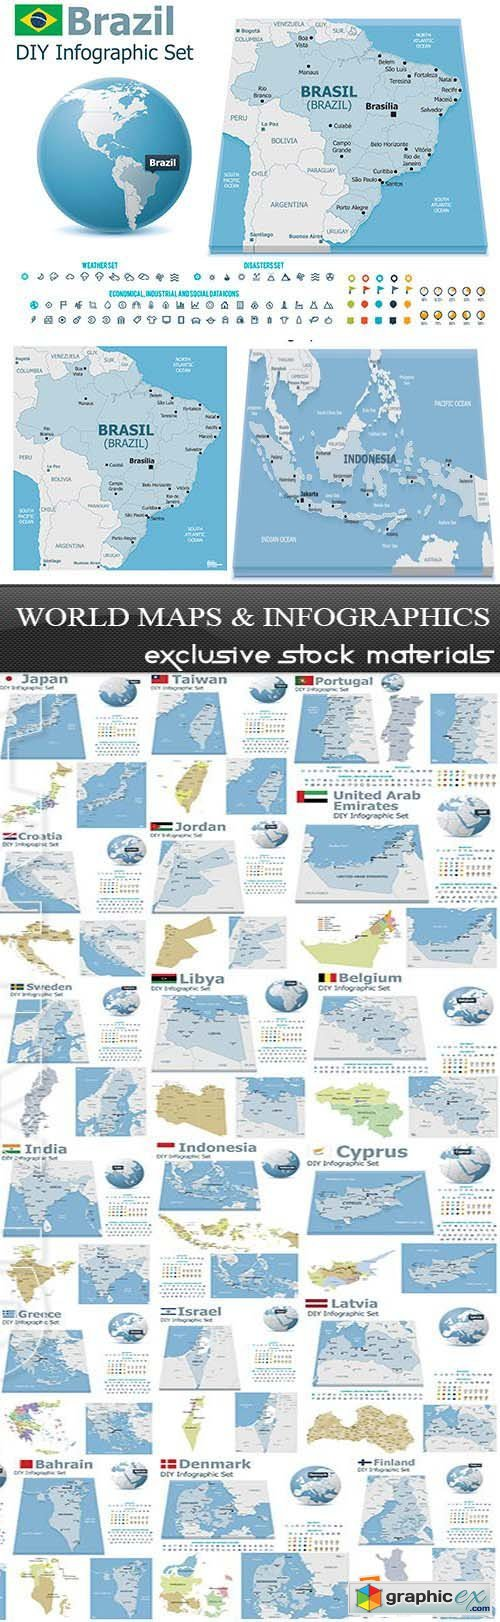 World Maps and Infographics, 25xEPS